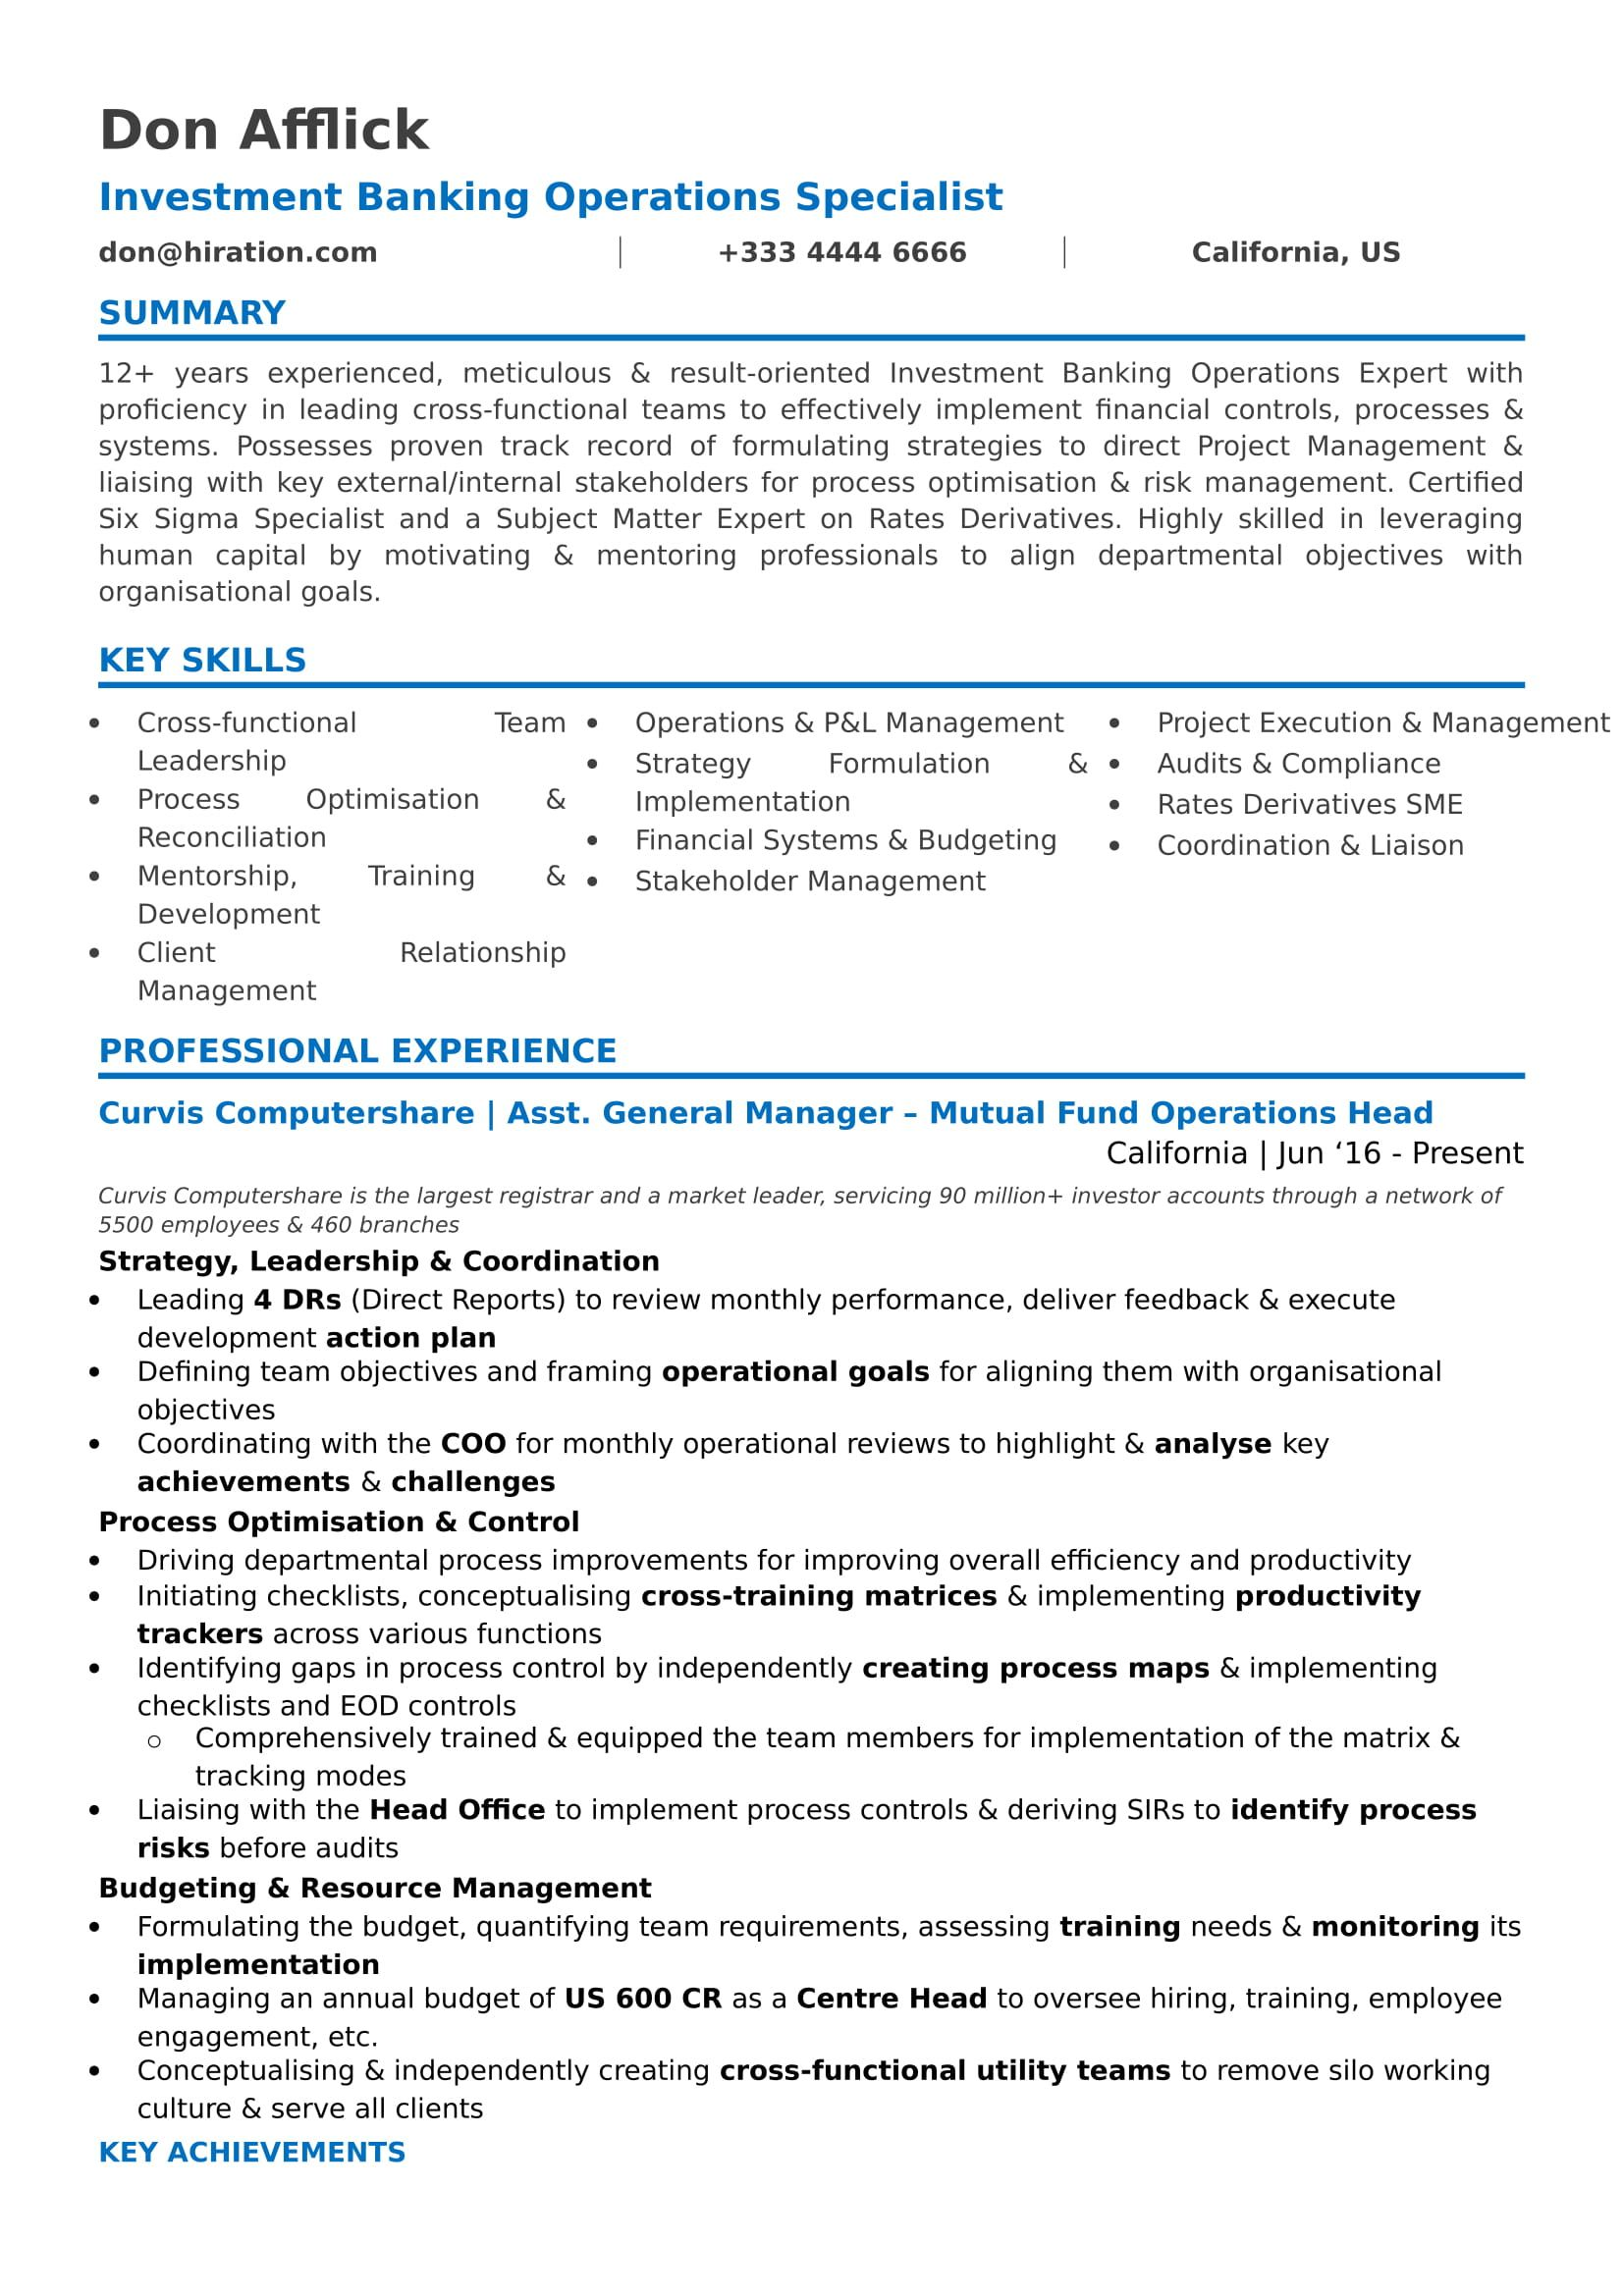 career change resume guide to for summary or objective hiration rohit mahagaonkar cv Resume Summary Or Objective For Resume